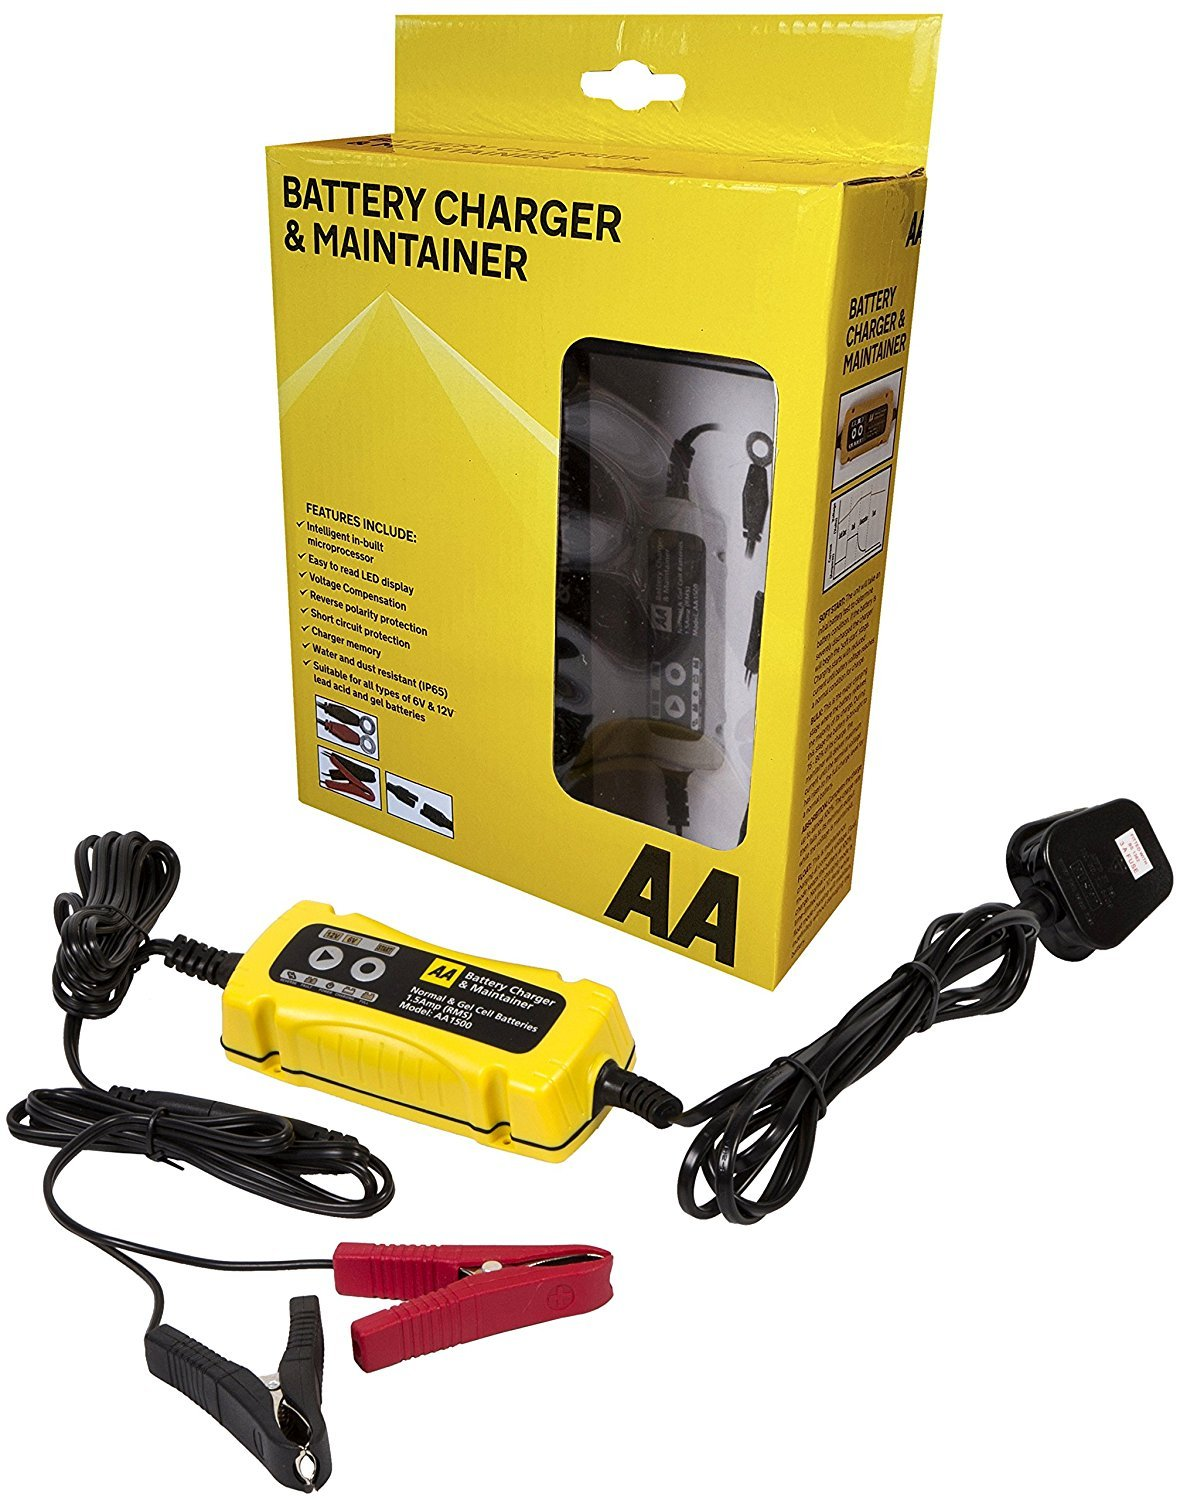 Aa Battery Charger Maintainer For 6v 12v Lead Acid And Gel Wiring Circuit Batteries Black Yellow Car Motorbike